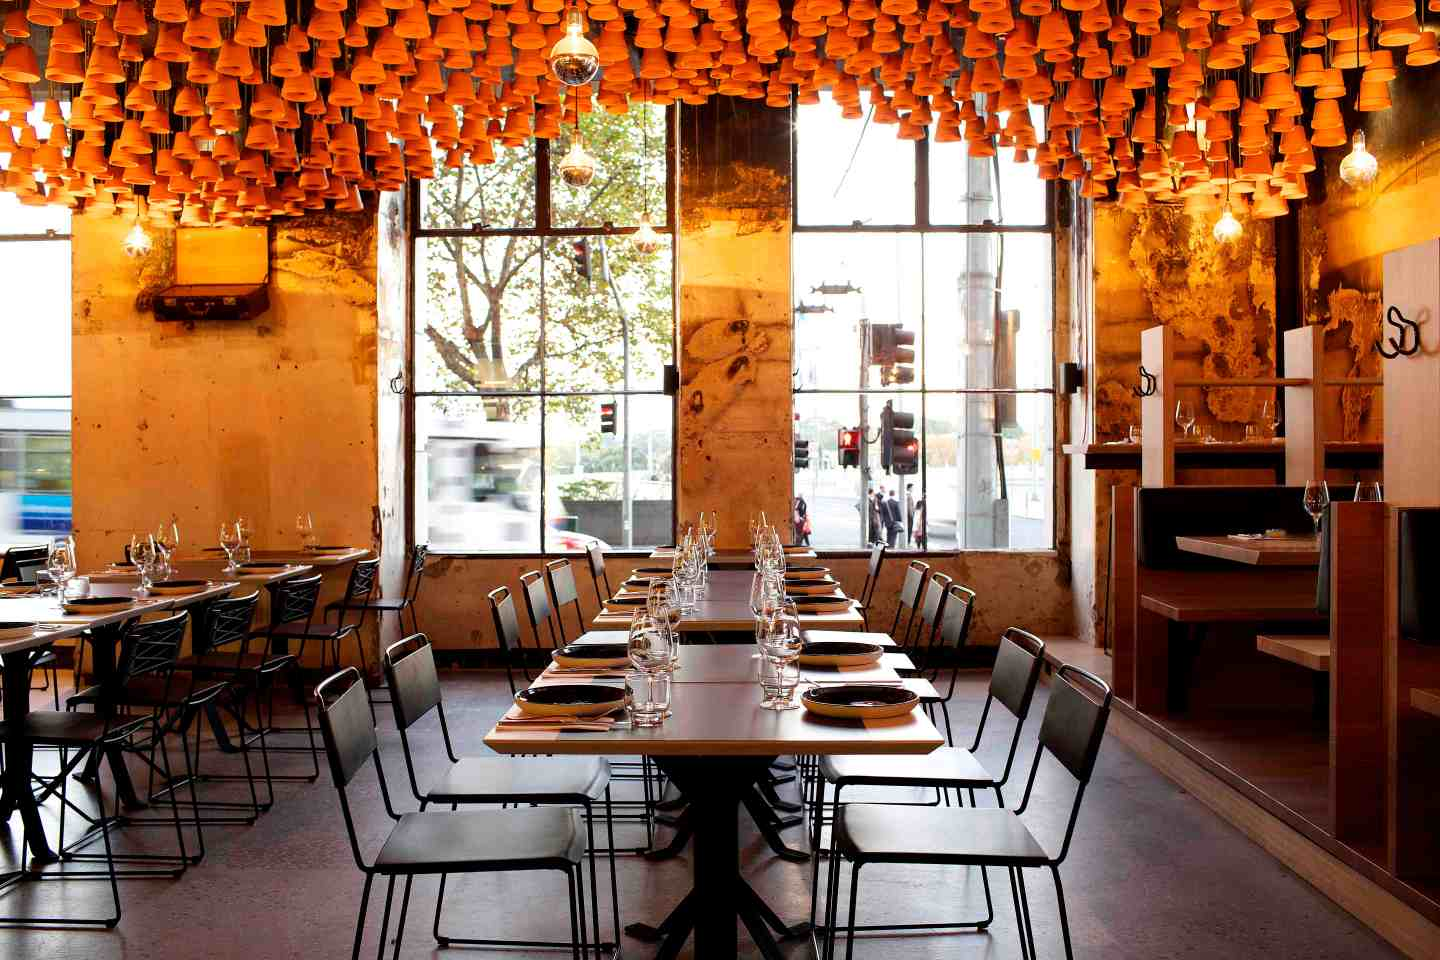 Gazi, Exhibition Street – Restaurant Review